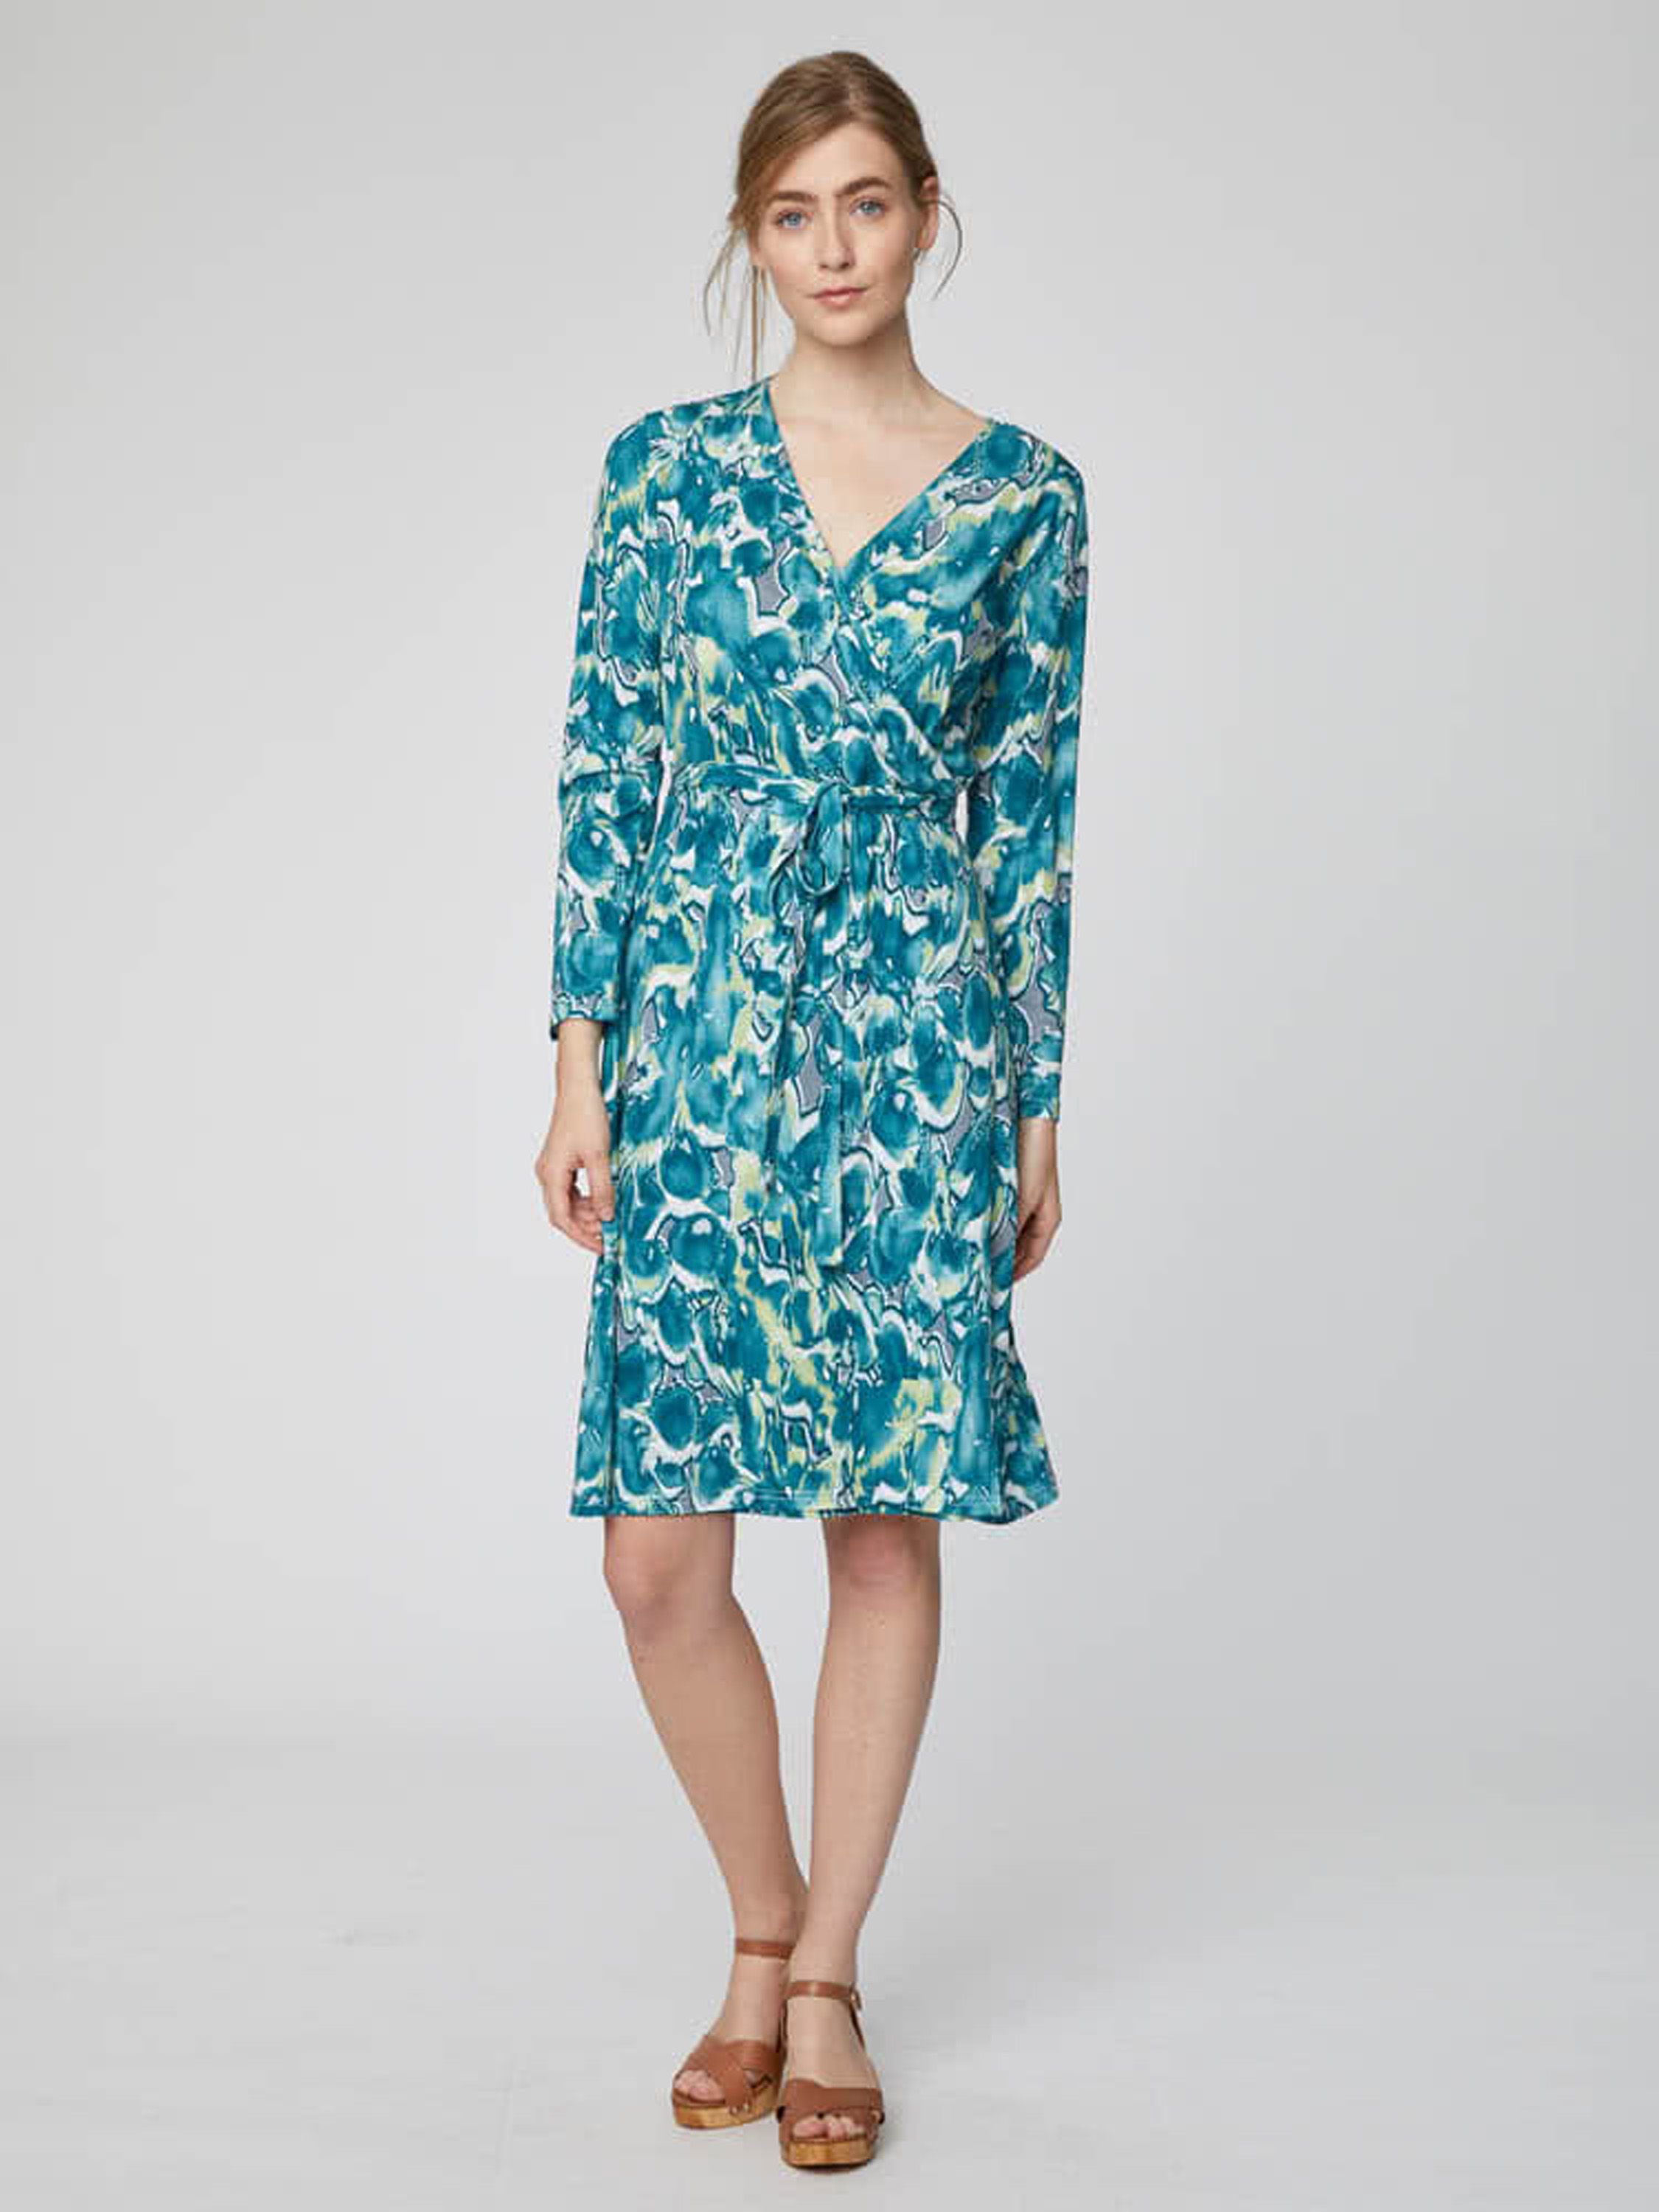 "<a href=""https://hanfhaus.de/en/thought-emmeline-bamboo-jersey-wrap-dress-p-254007.html\"" itemprop=\""url\""><span itemprop=\""name\"">Emmeline Bamboo Jersey Wrap Dress</span></a><br /><small>[<span itemprop=\""model\"">254007</span>]</small>"